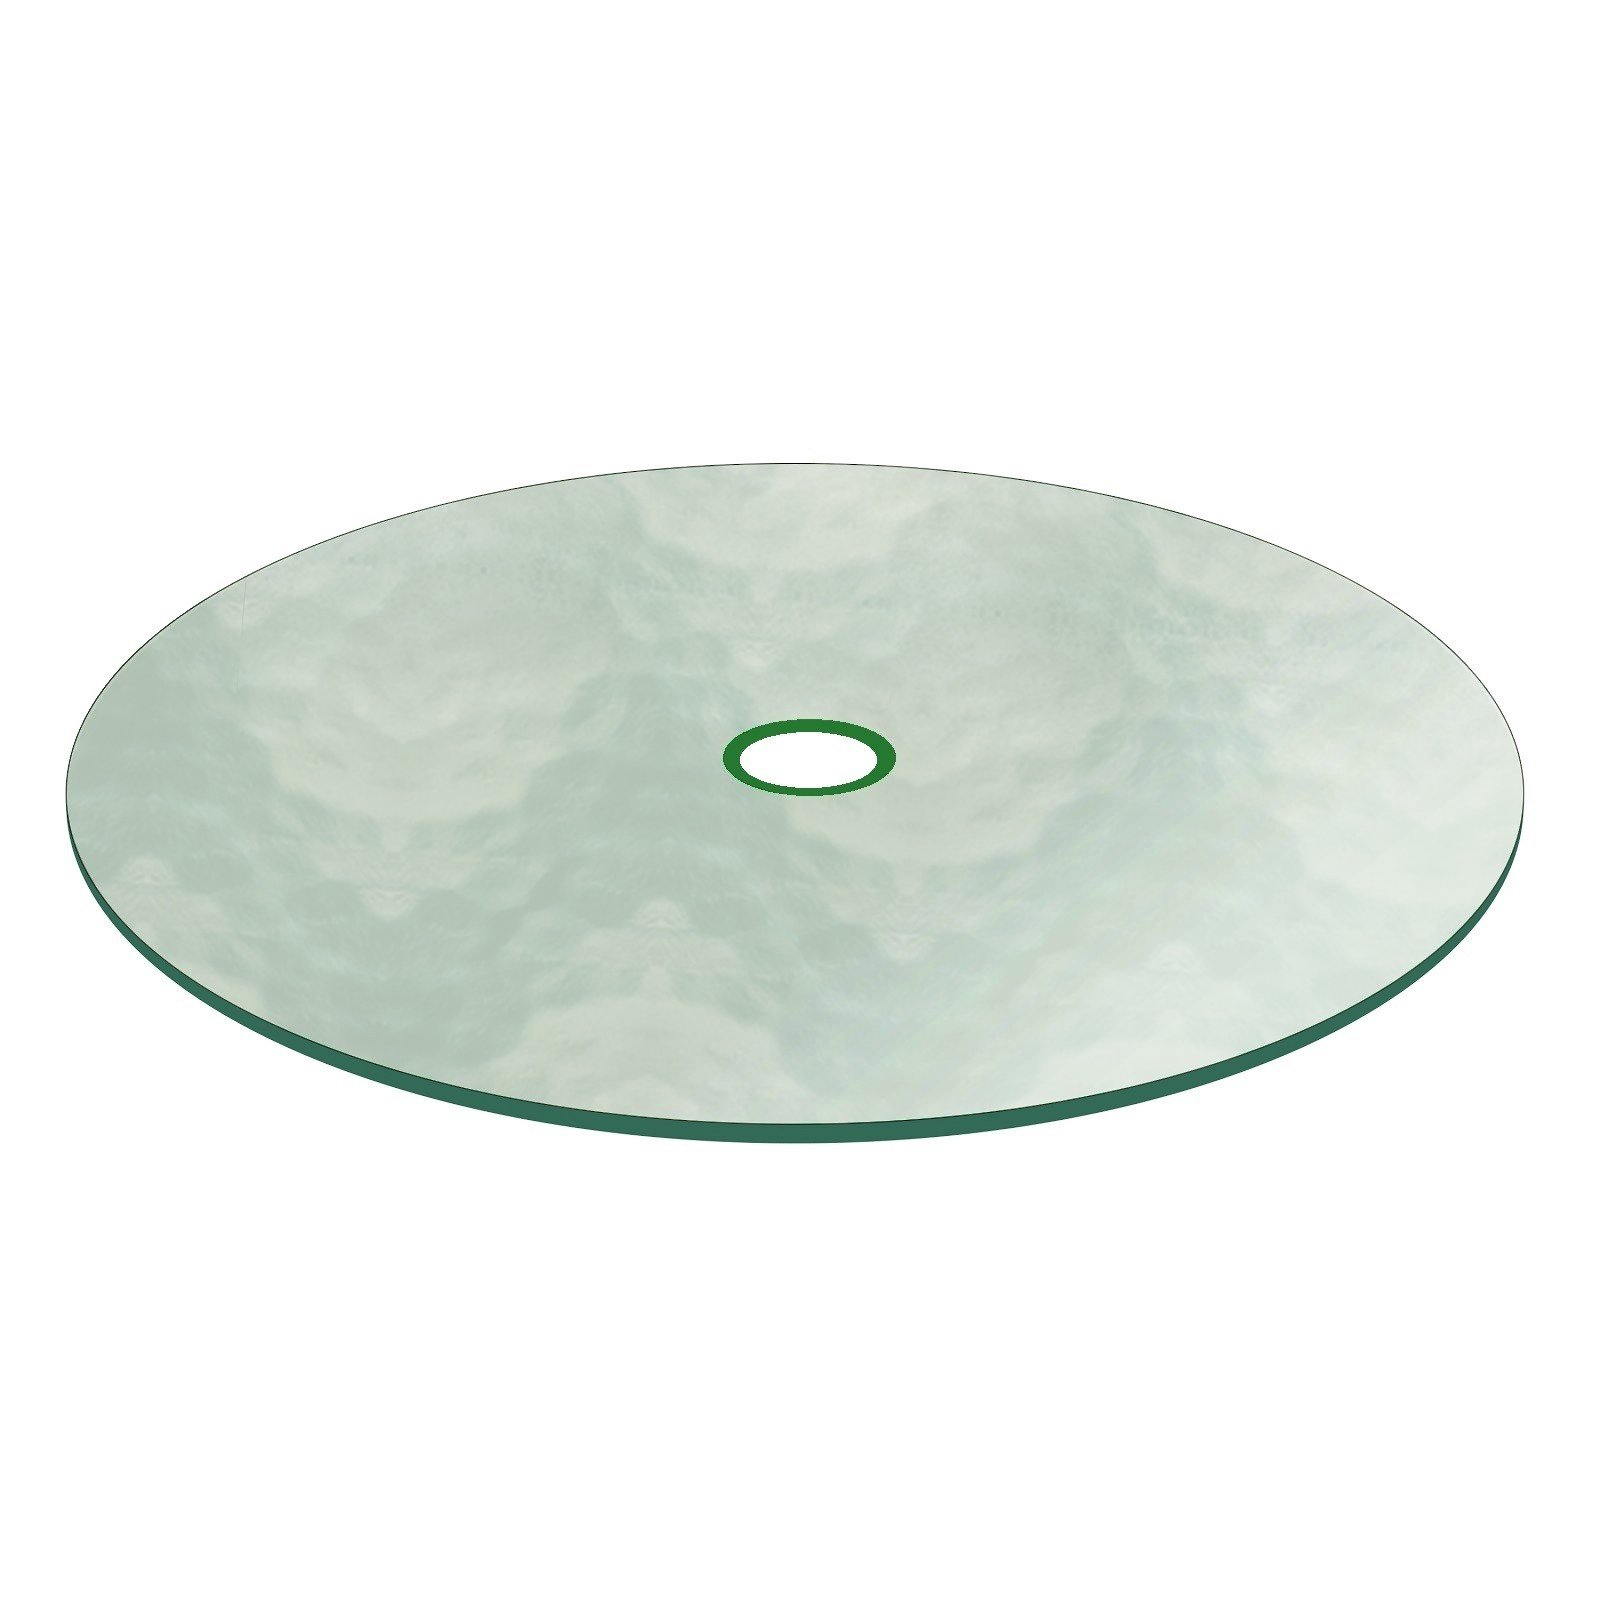 Aquatex Patio Glass Table Top 48'' Round 3/16'' Thick Flat Tempered w/ 2-1/4'' Hole by Fab Glass and Mirror